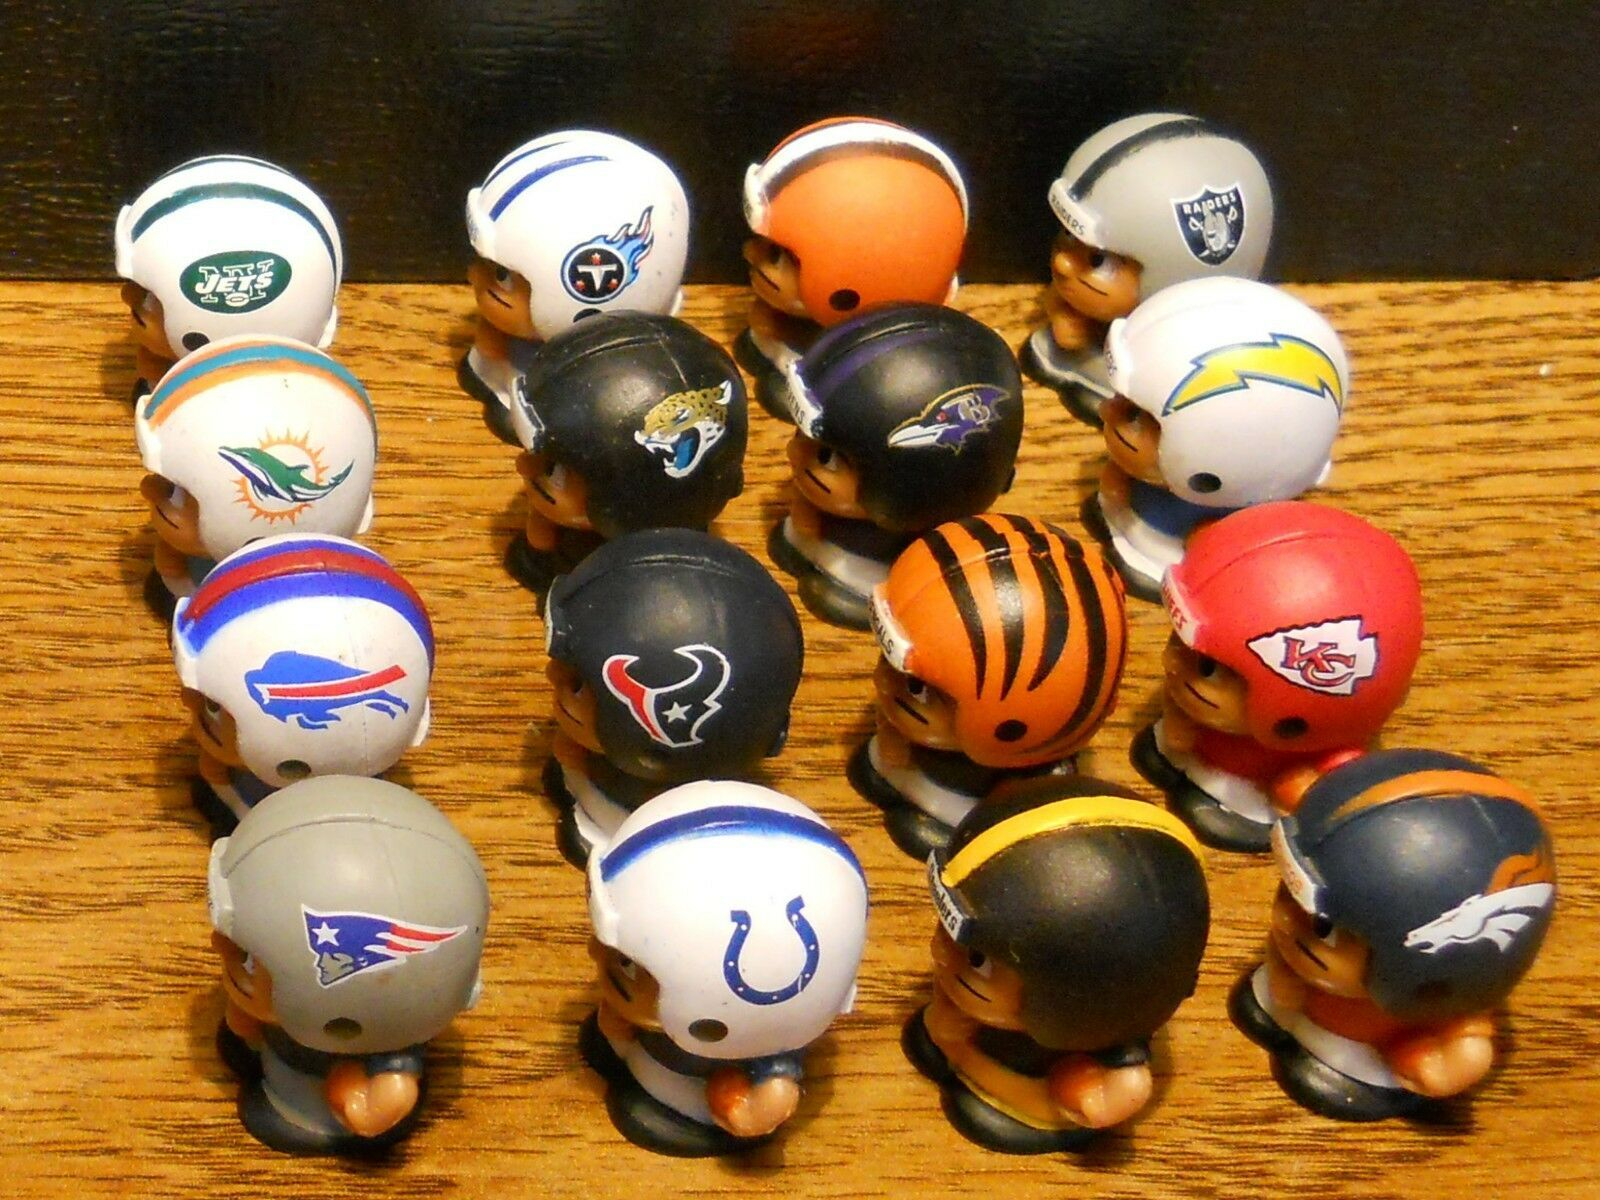 2013 NFL FOOTBALL TEENYMATES FIGURES SERIES 2 -  PICK YOUR FOOTBALL TEAM FIGURE image 2